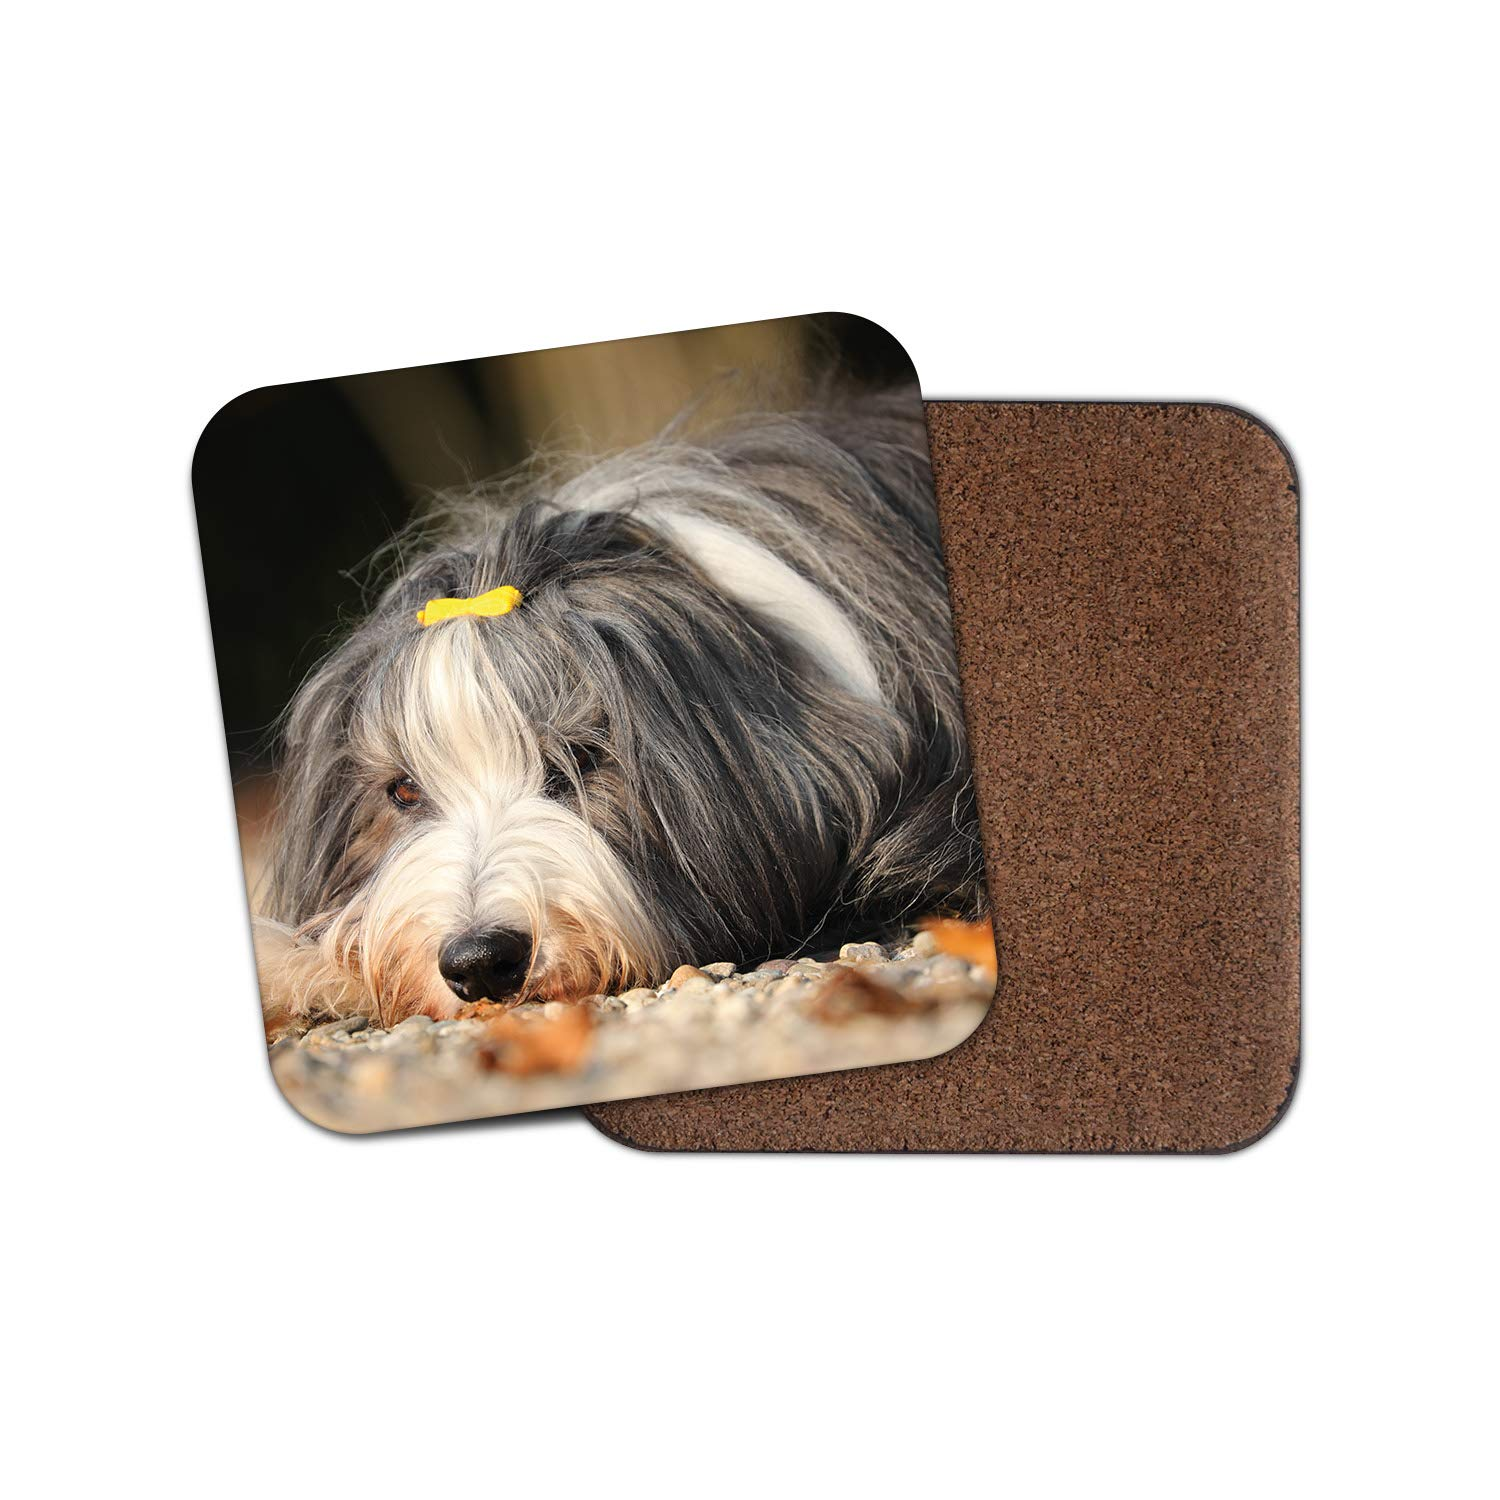 1 x Bearded Collie Puppy Coaster – Dog Cute Pretty Pets Animals Puppies Gift #15815